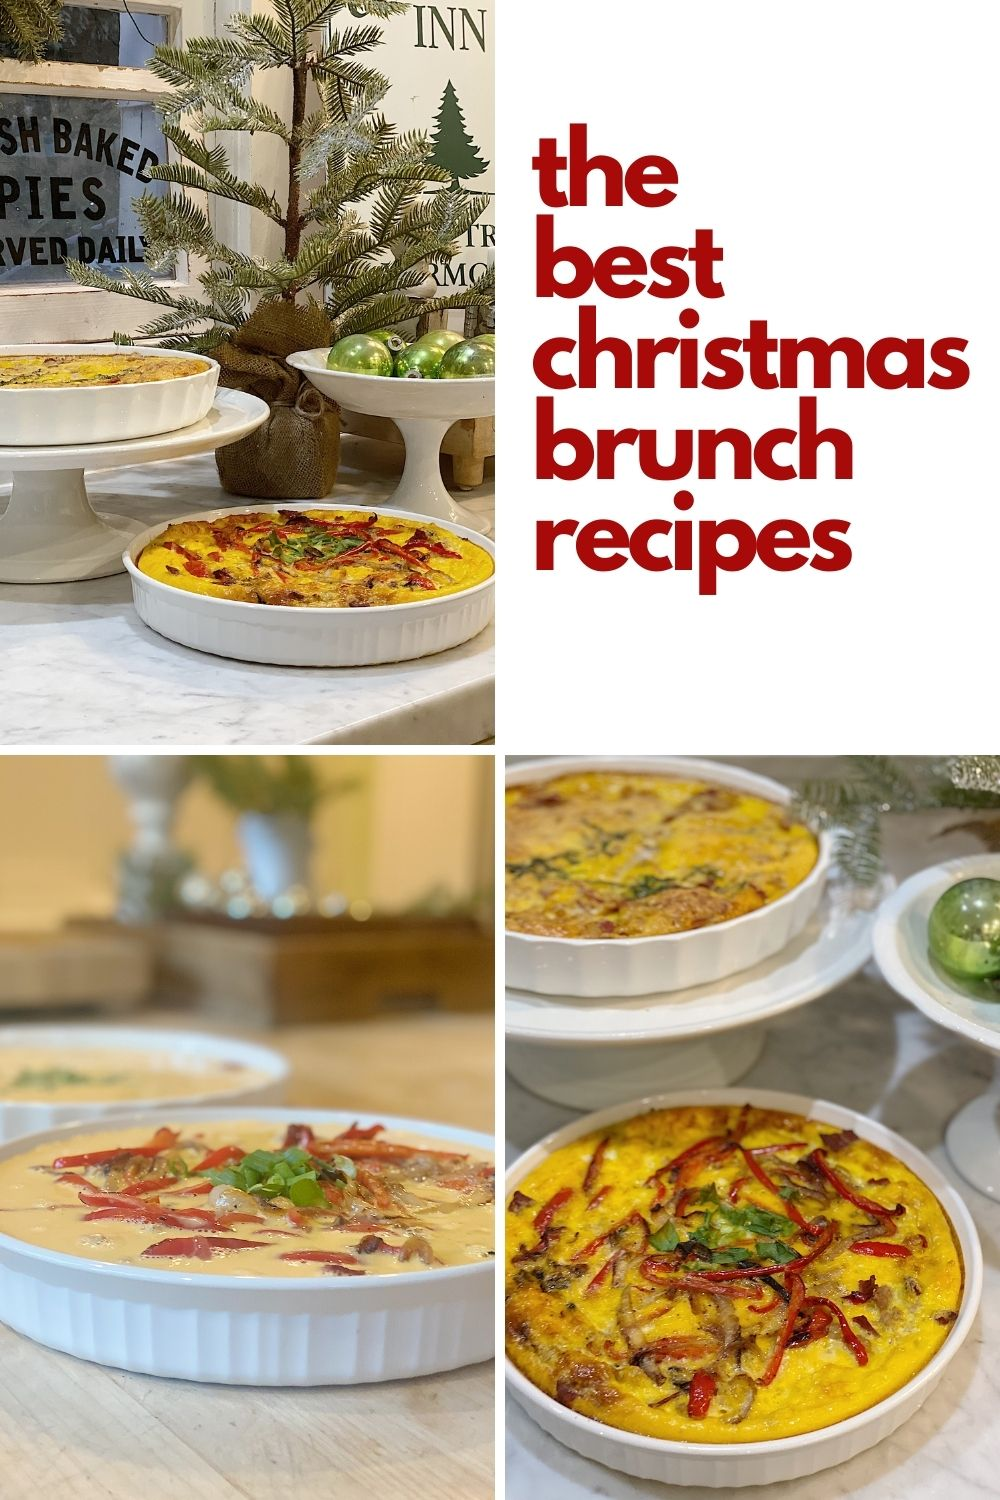 Now that our Christmas Dining Table is set, I am excited to share with you some amazing Christmas Brunch recipes for frittatas.